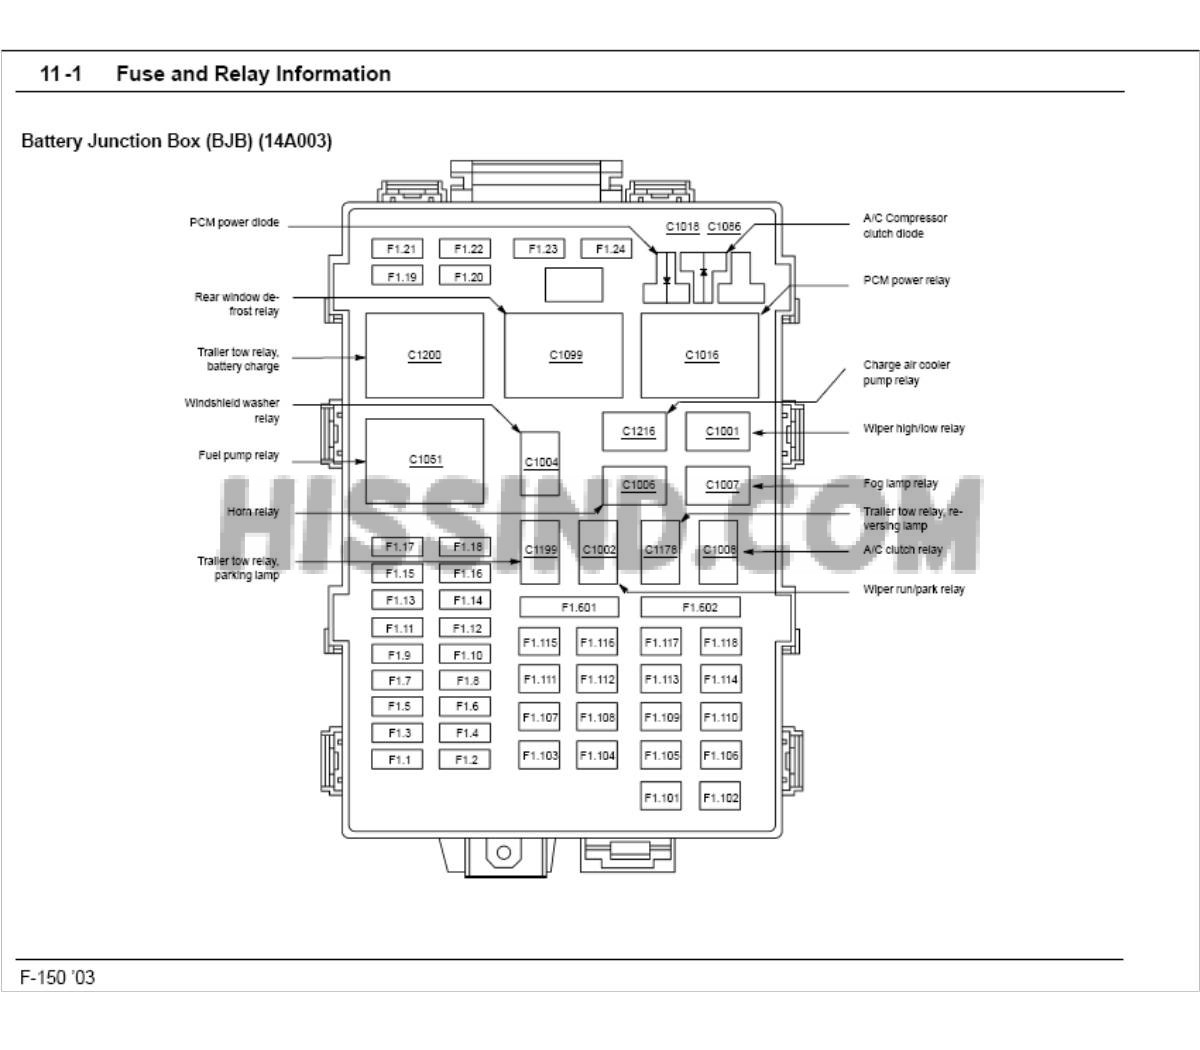 04 Ford Escape Fuse Box Diagram 31 Wiring Images F 150 Location 2000 F150 Engine Bay